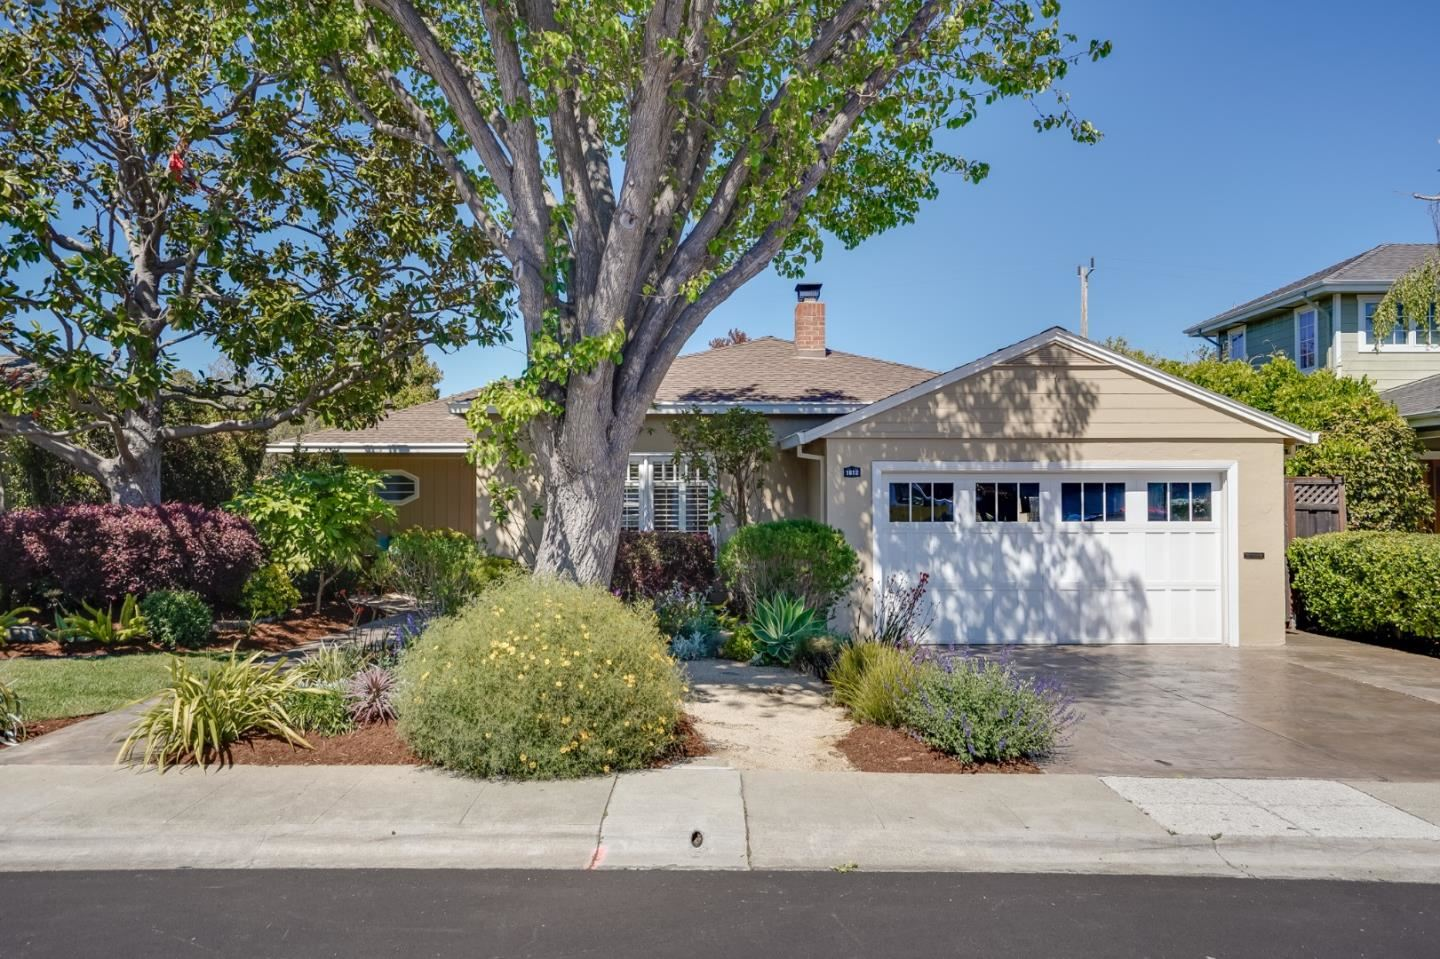 Photo for 1612 Marco Polo Way, BURLINGAME, CA 94010 (MLS # ML81841711)